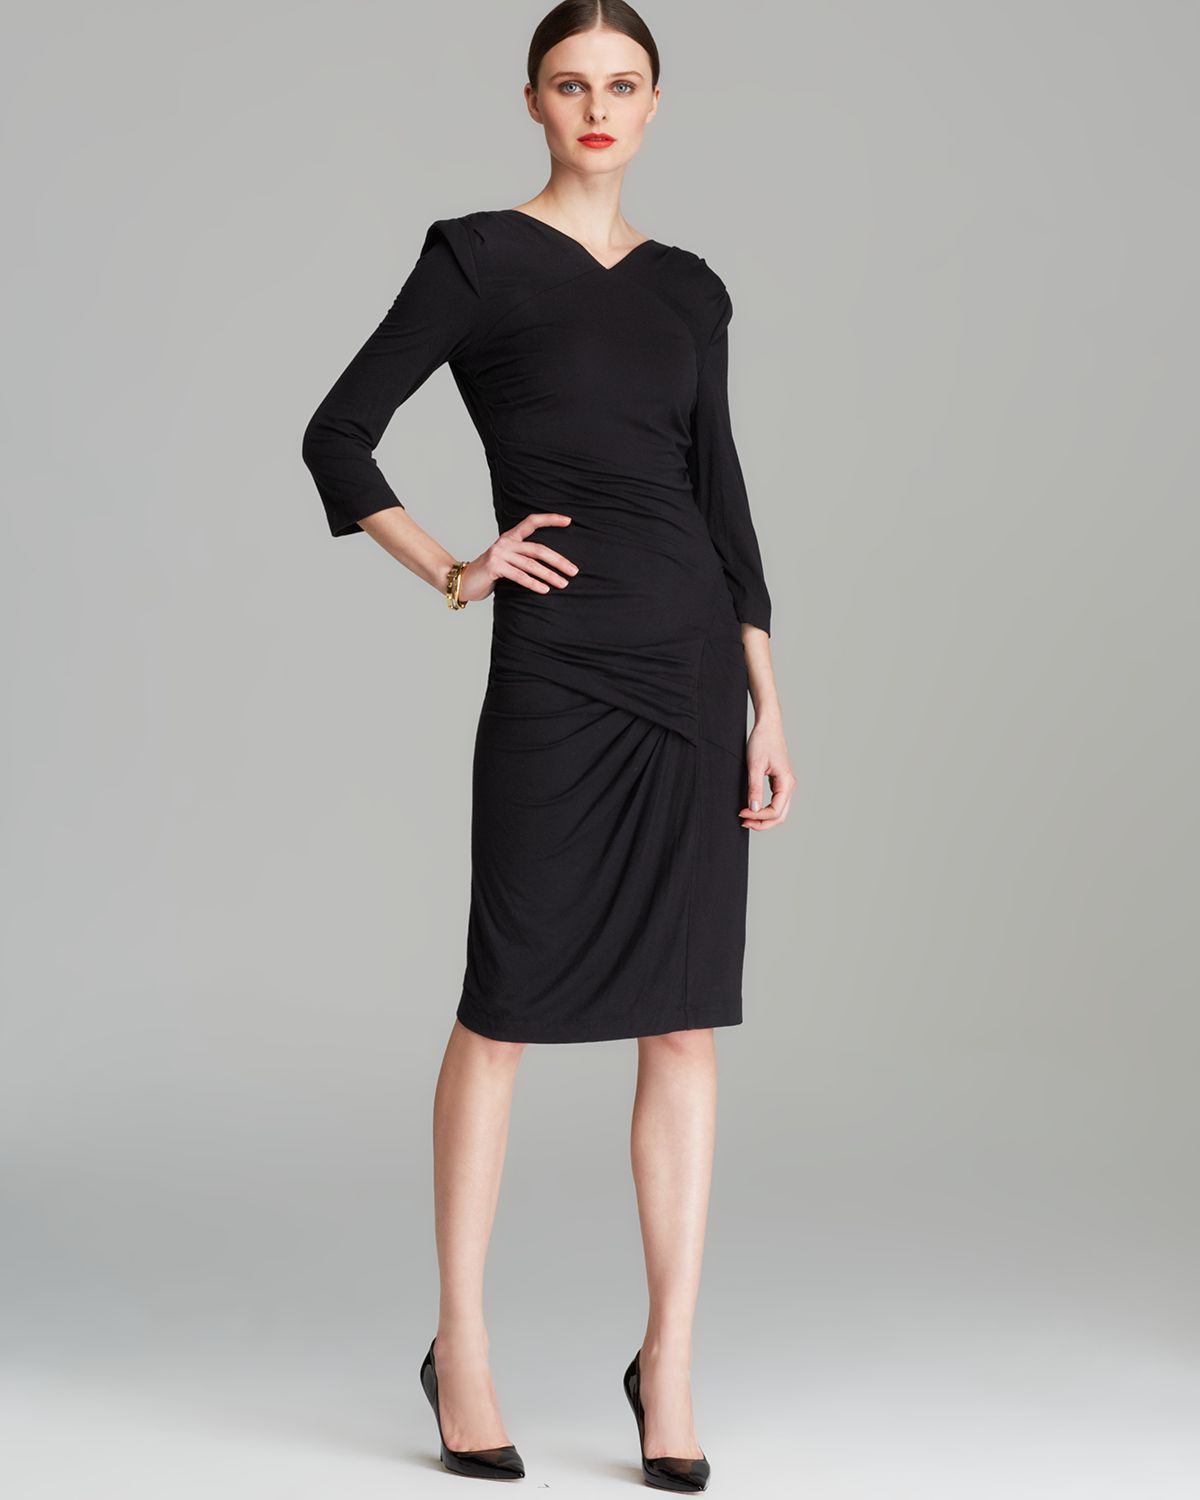 Black dress quarter sleeve - Gallery